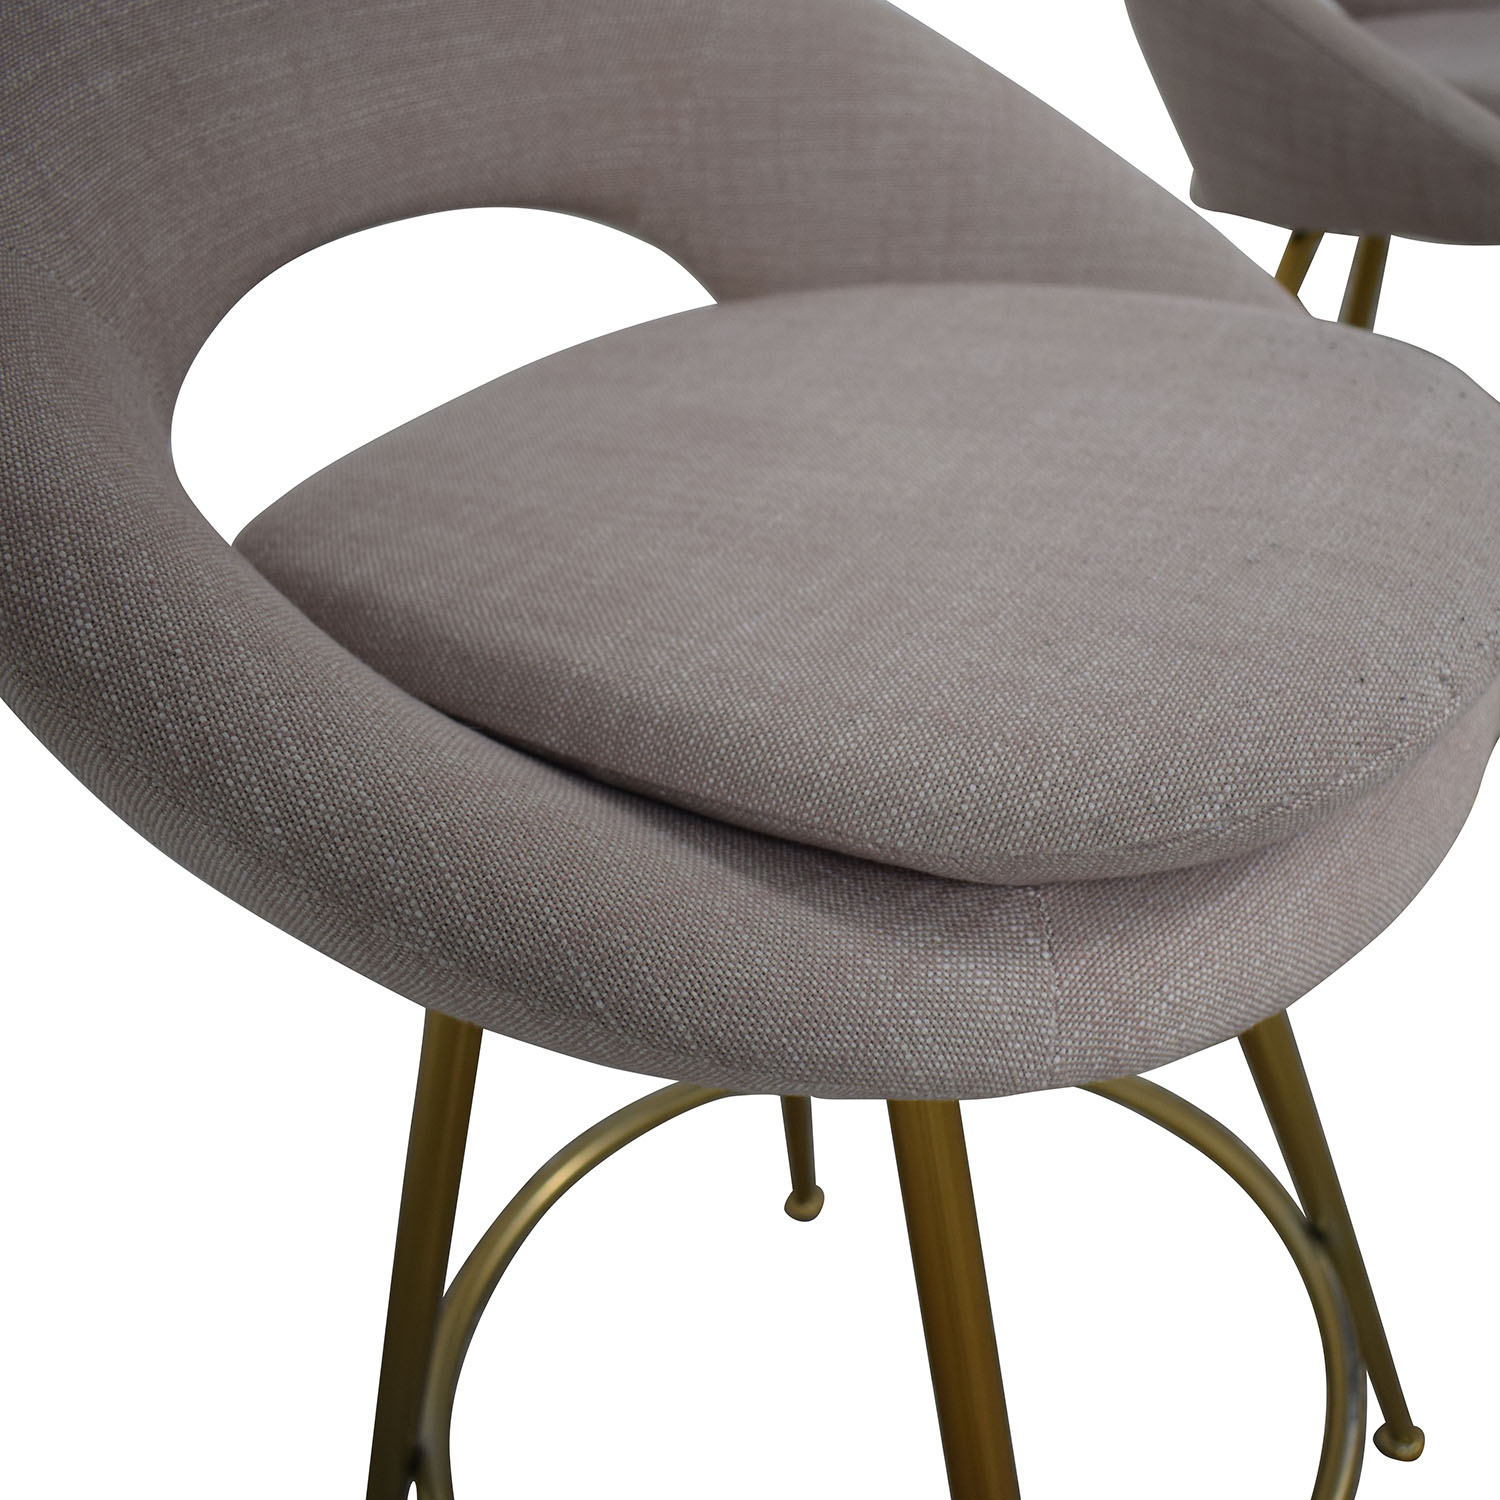 West Elm Orb Upholstered Bar Stools / Chairs